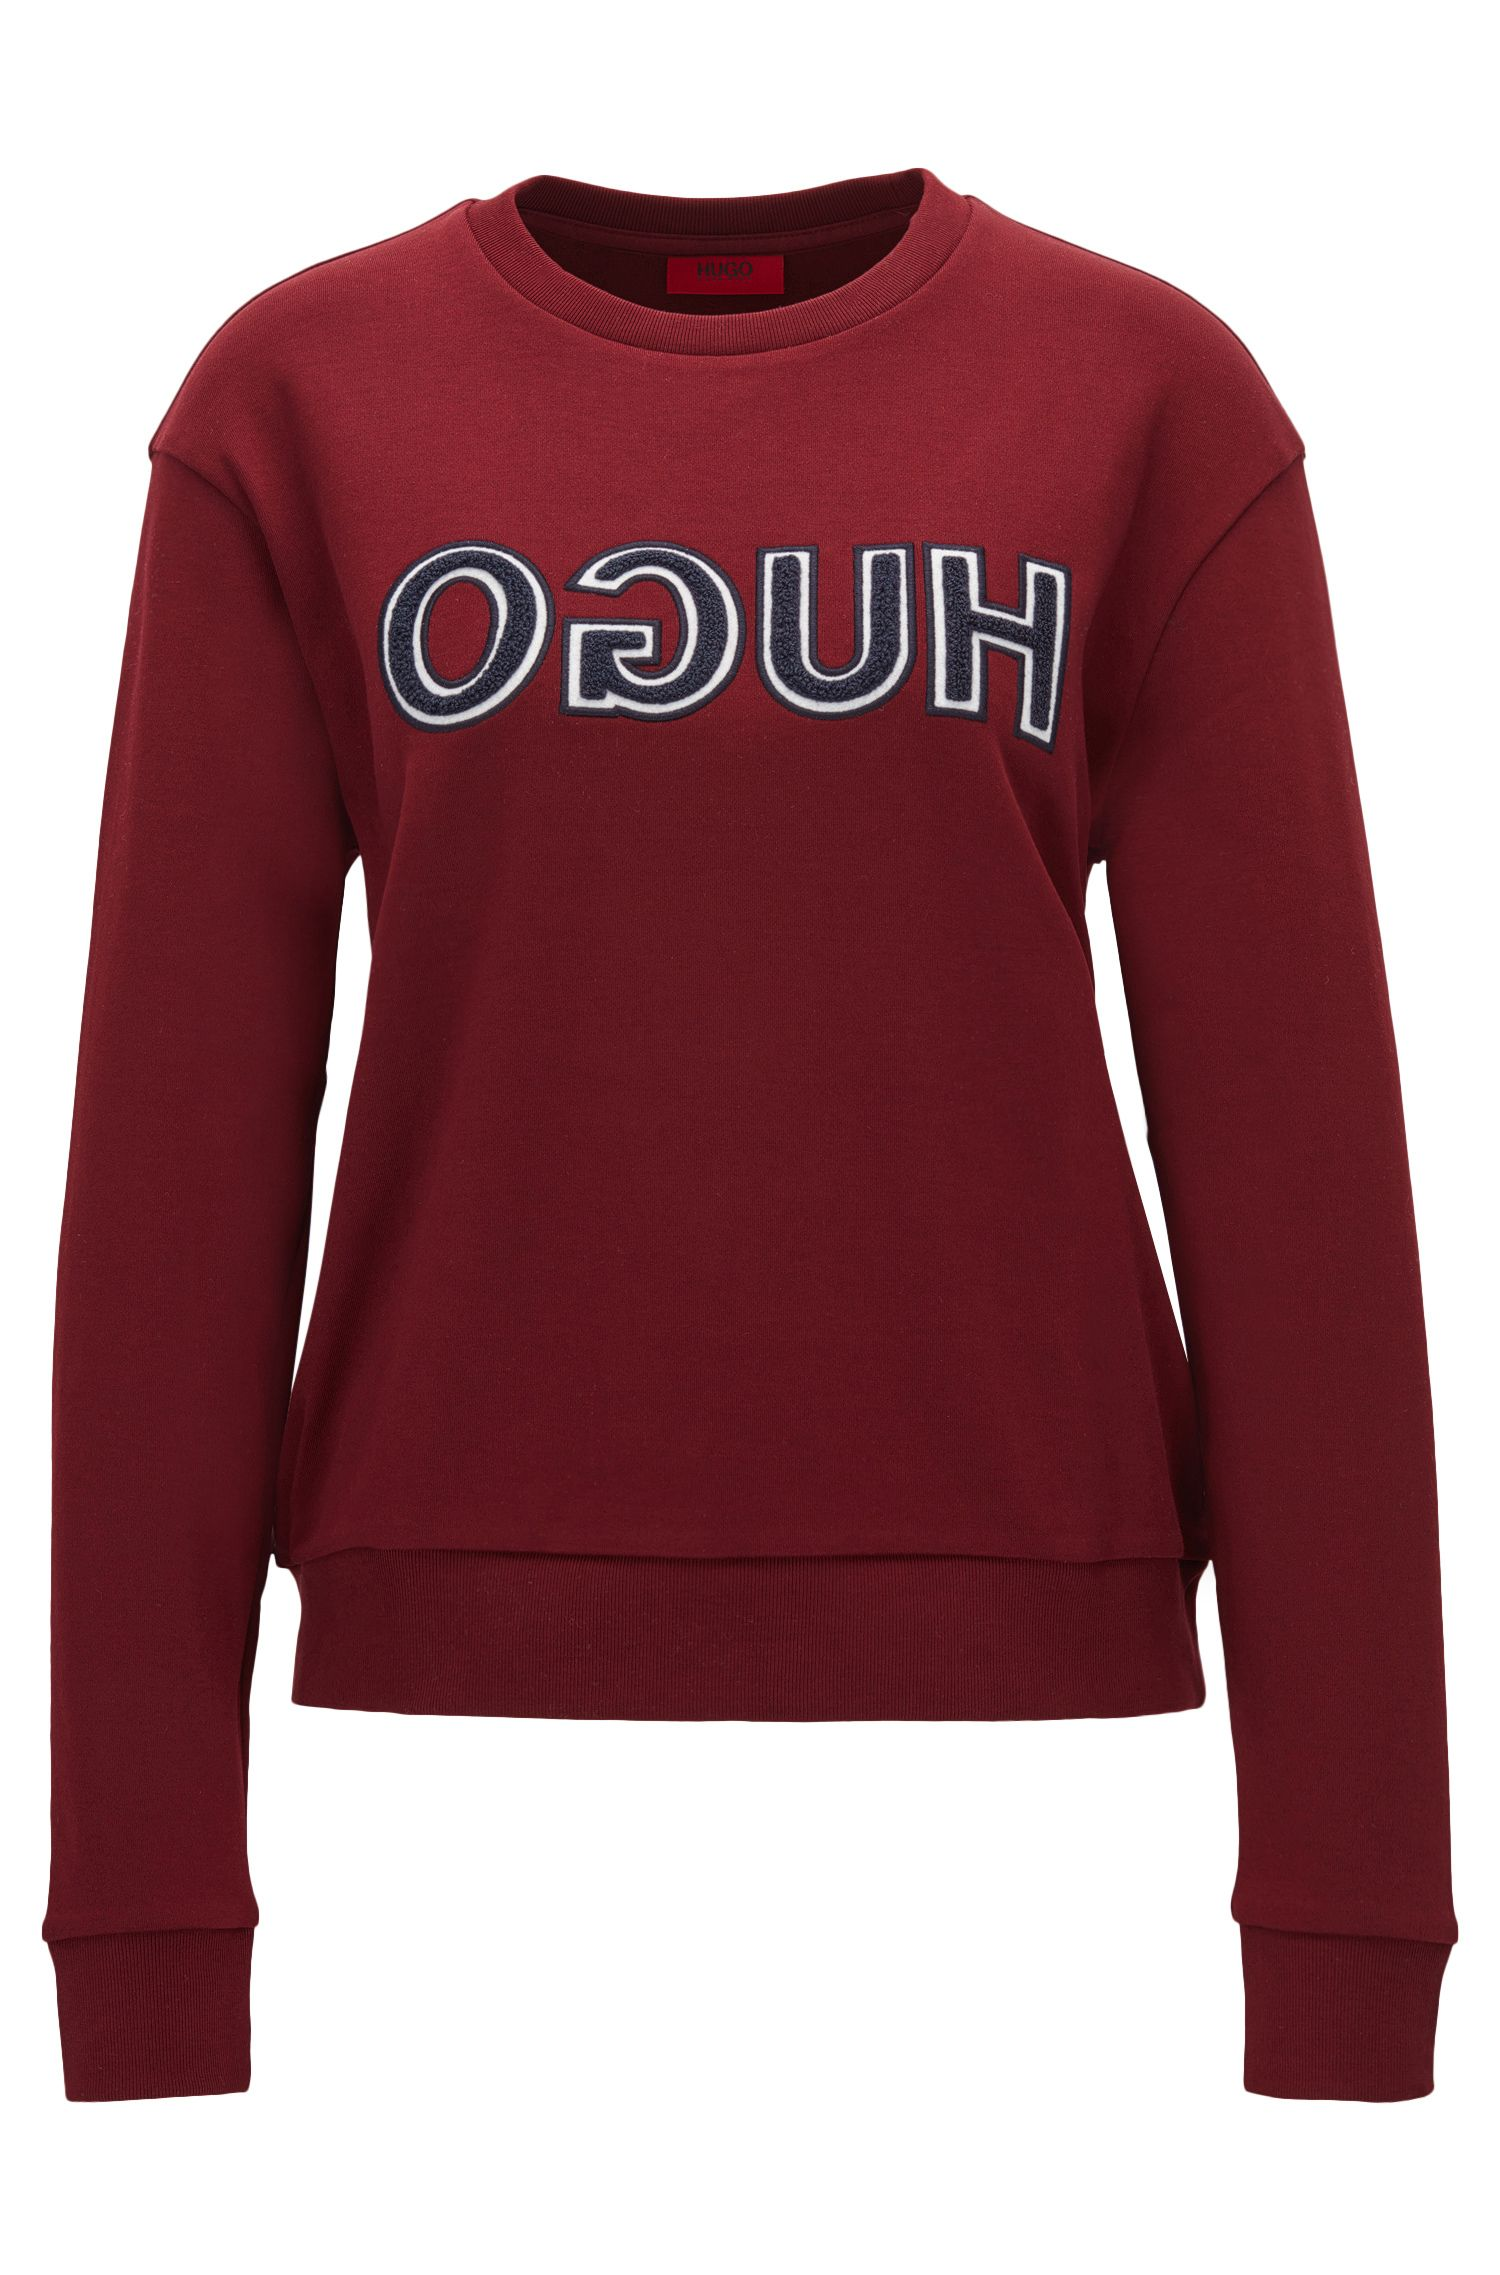 Long-sleeved cotton T-shirt with varsity-style reverse logo